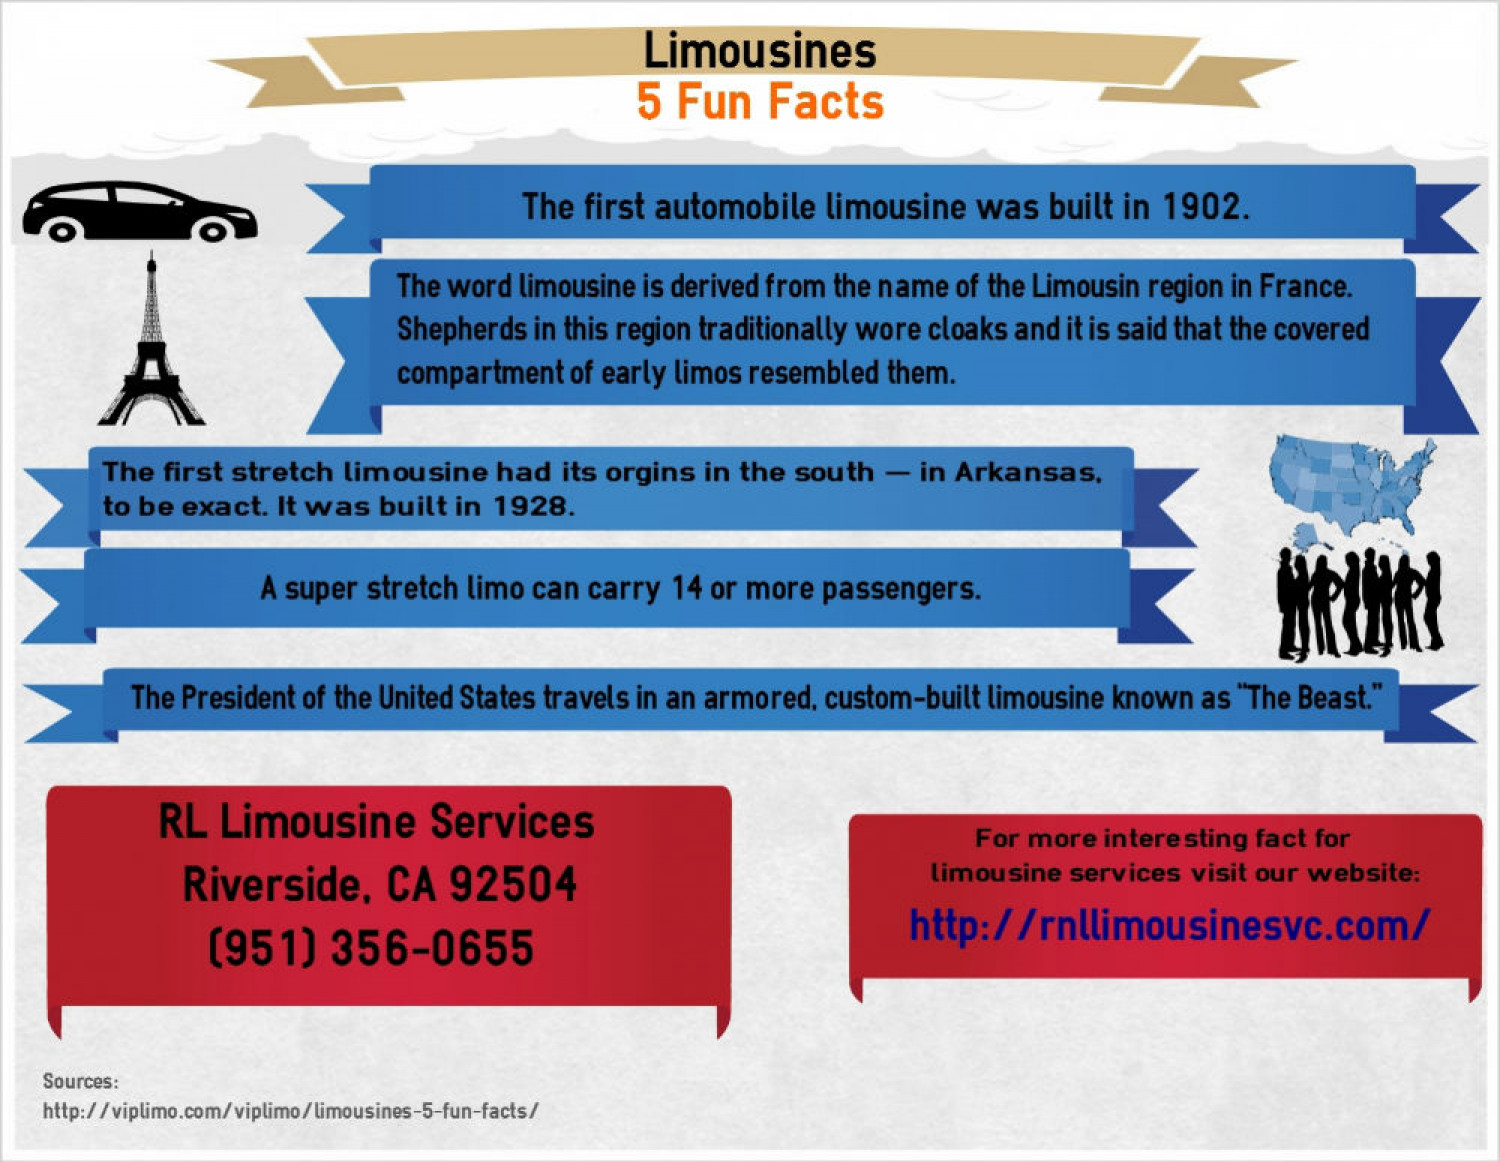 Limousines 5 Fun Facts Infographic